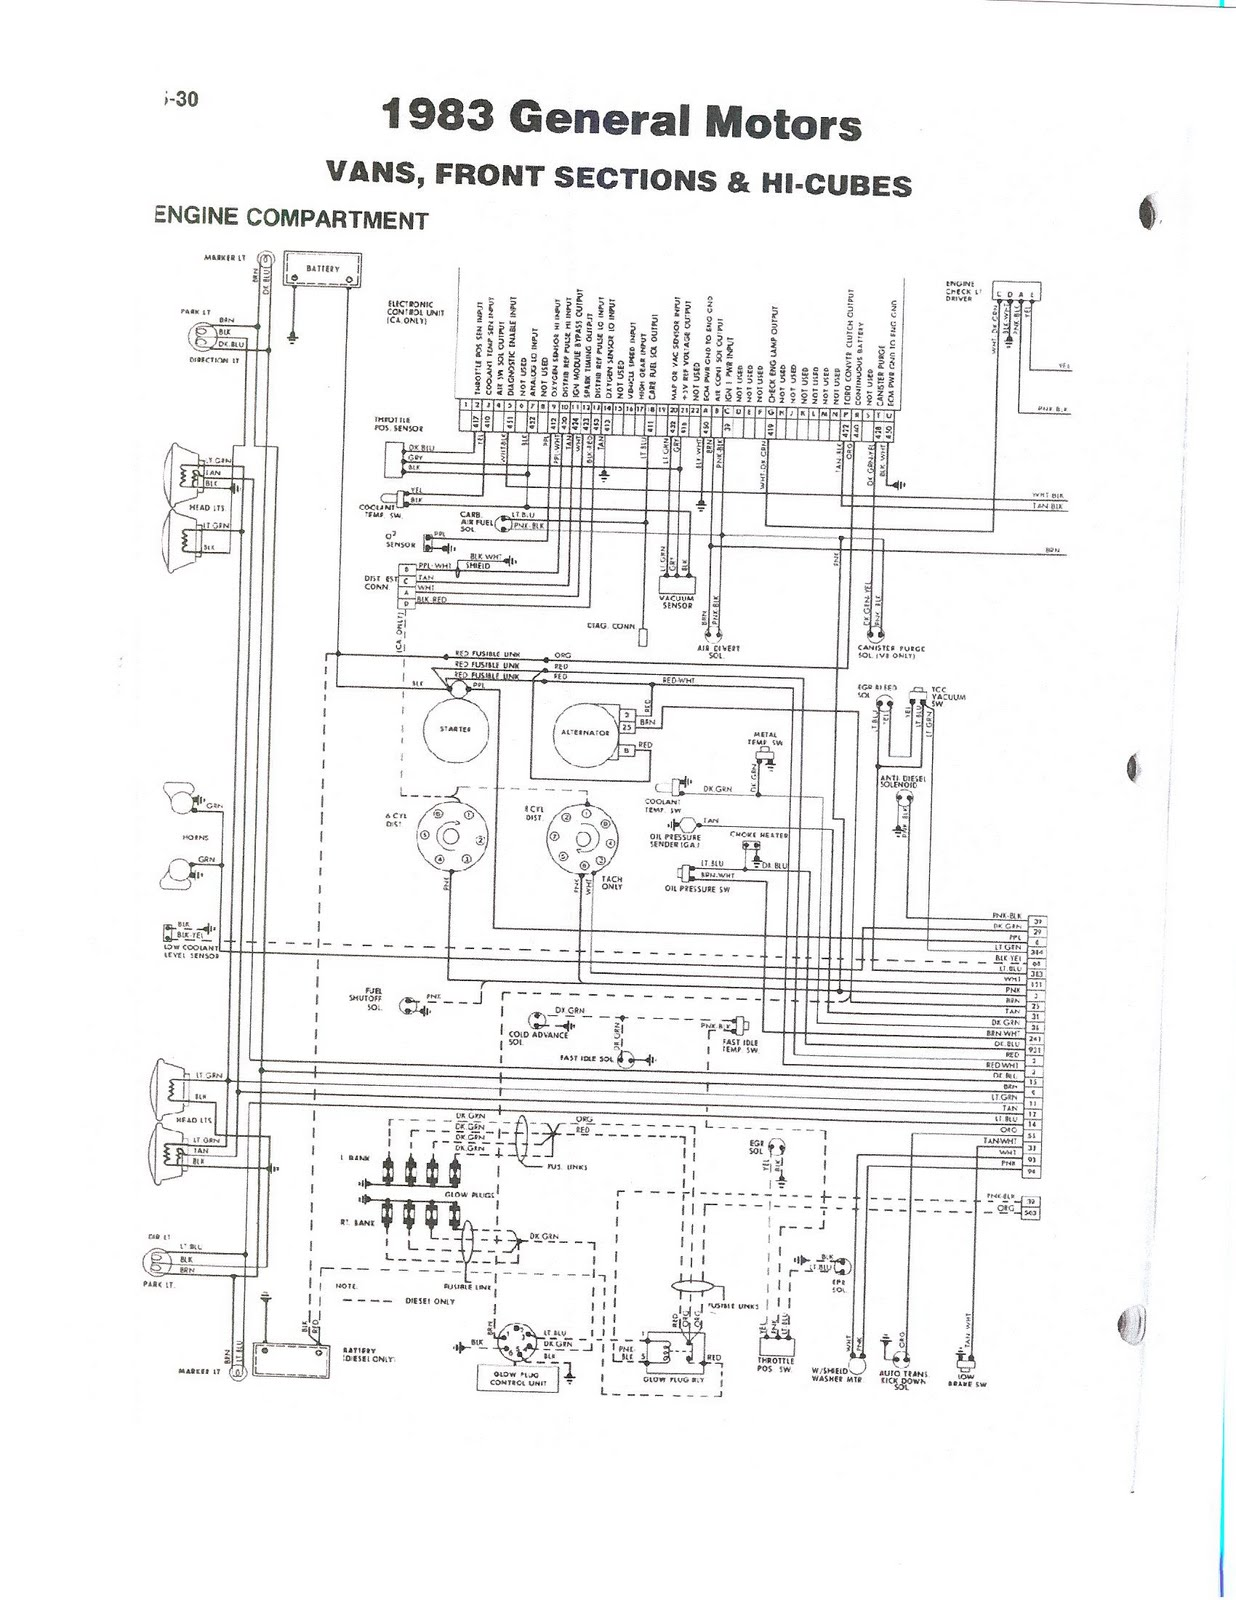 83+GM+Van+front+section+%26+Hi Cubes+engine+compartment 1995 fleetwood southwind rv wiring diagram wiring diagrams